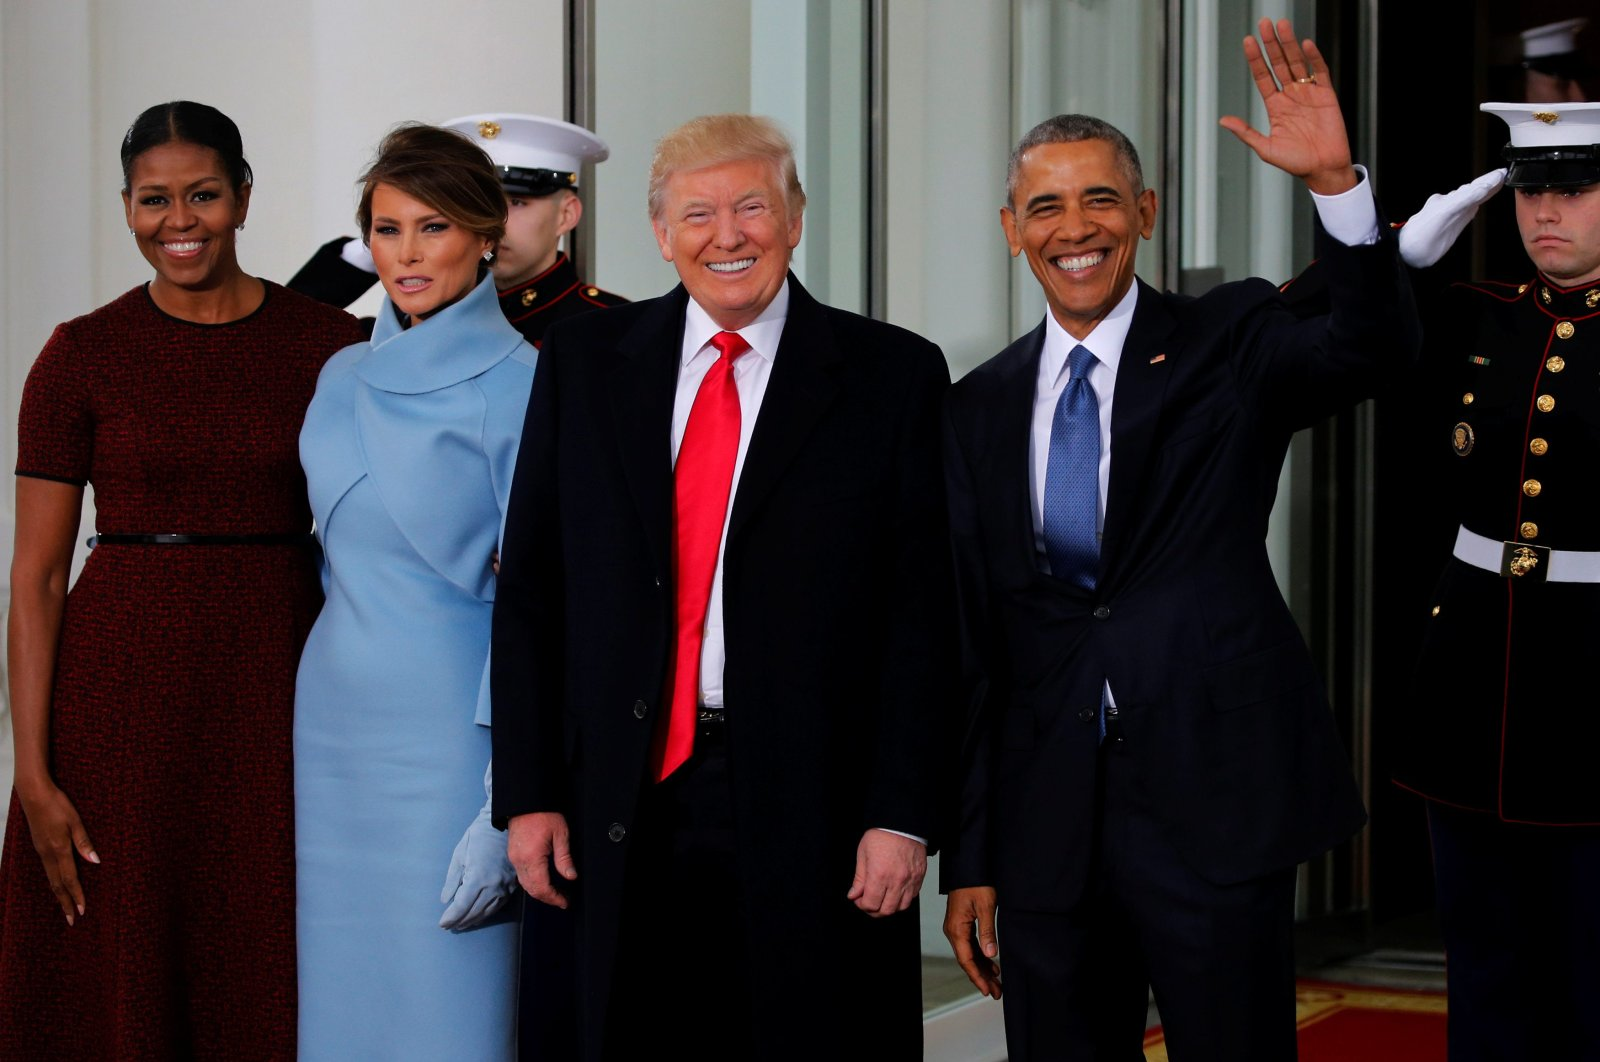 U.S. President Barack Obama (R) and first lady Michelle Obama (L) greet U.S. President-elect Donald Trump and his wife Melania for tea before the inauguration at the White House in Washington, U.S. January 20, 2017. (Reuters Photo)